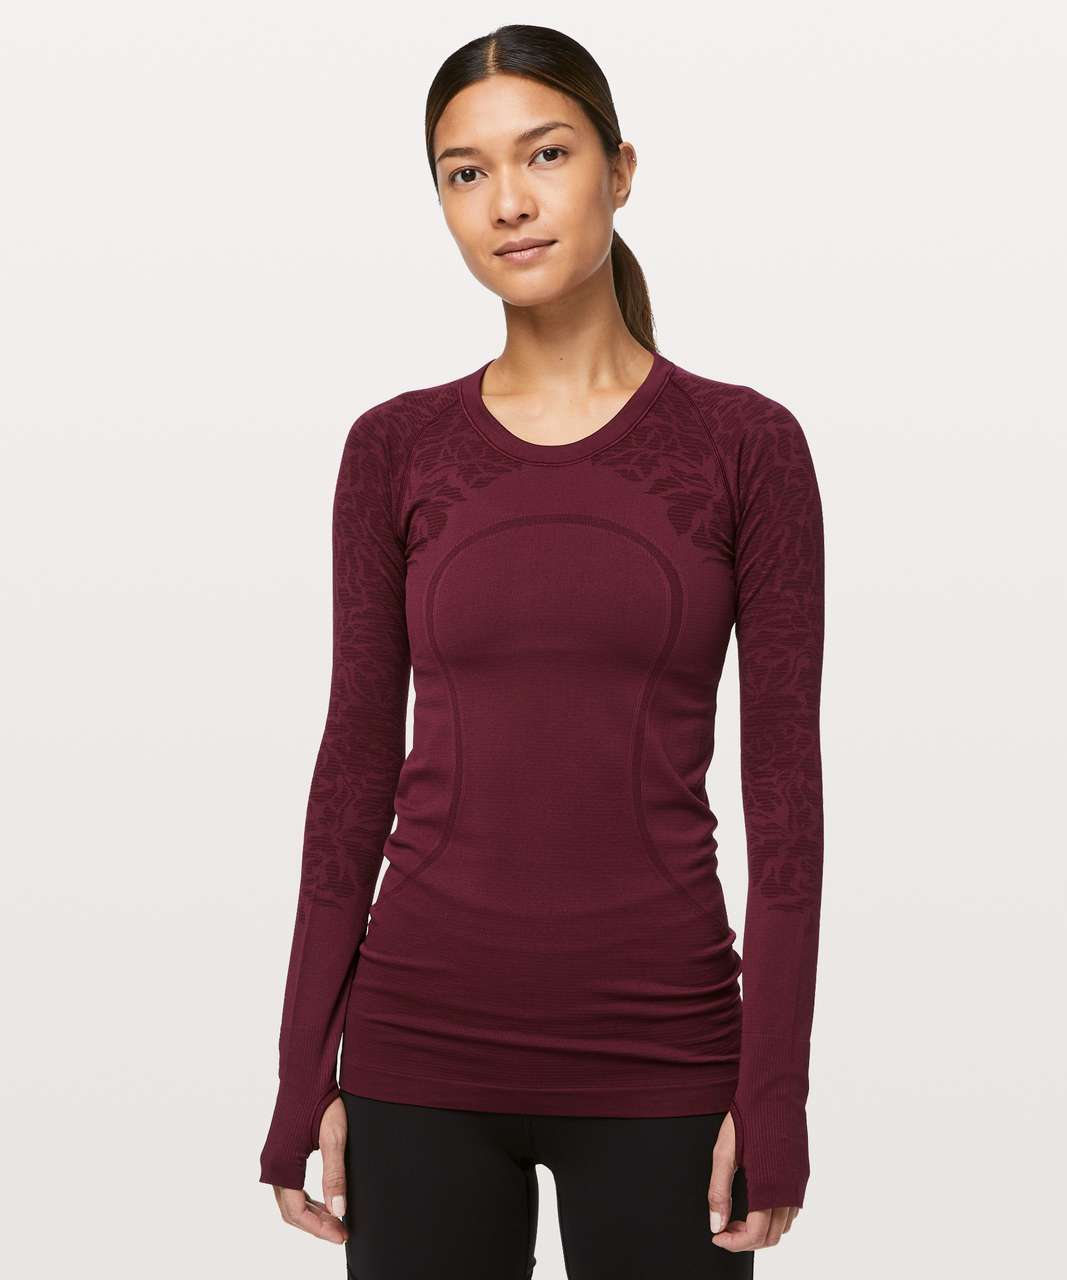 Lululemon Swiftly Tech Long Sleeve Crew - Deep Ruby / Deep Ruby